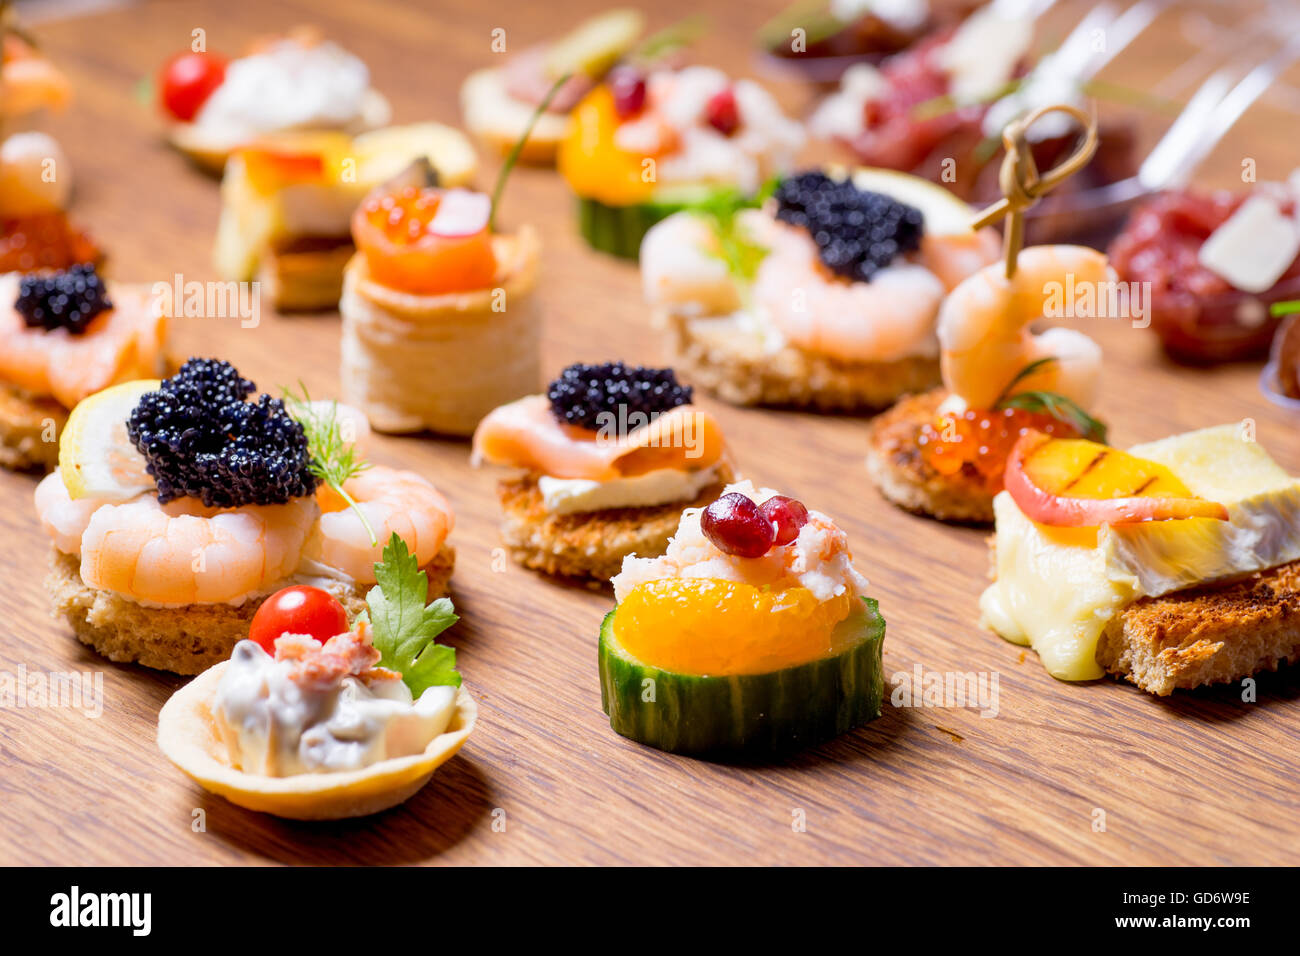 exquisite selection of luxury canapes appetizer ready to be served stock photo royalty free. Black Bedroom Furniture Sets. Home Design Ideas